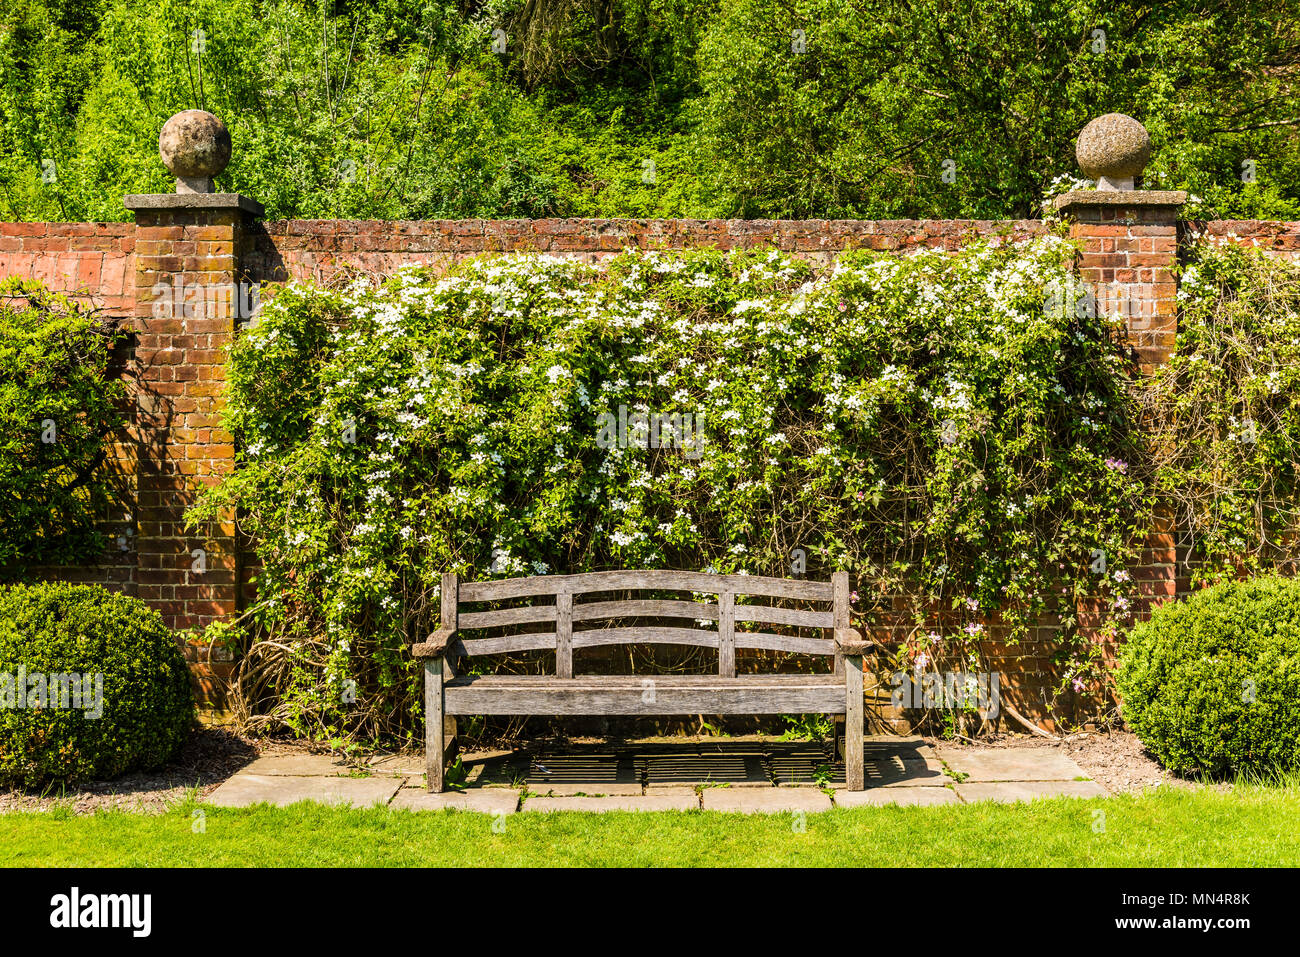 Bench and wall at Chartwell, Kent, UK - Stock Image